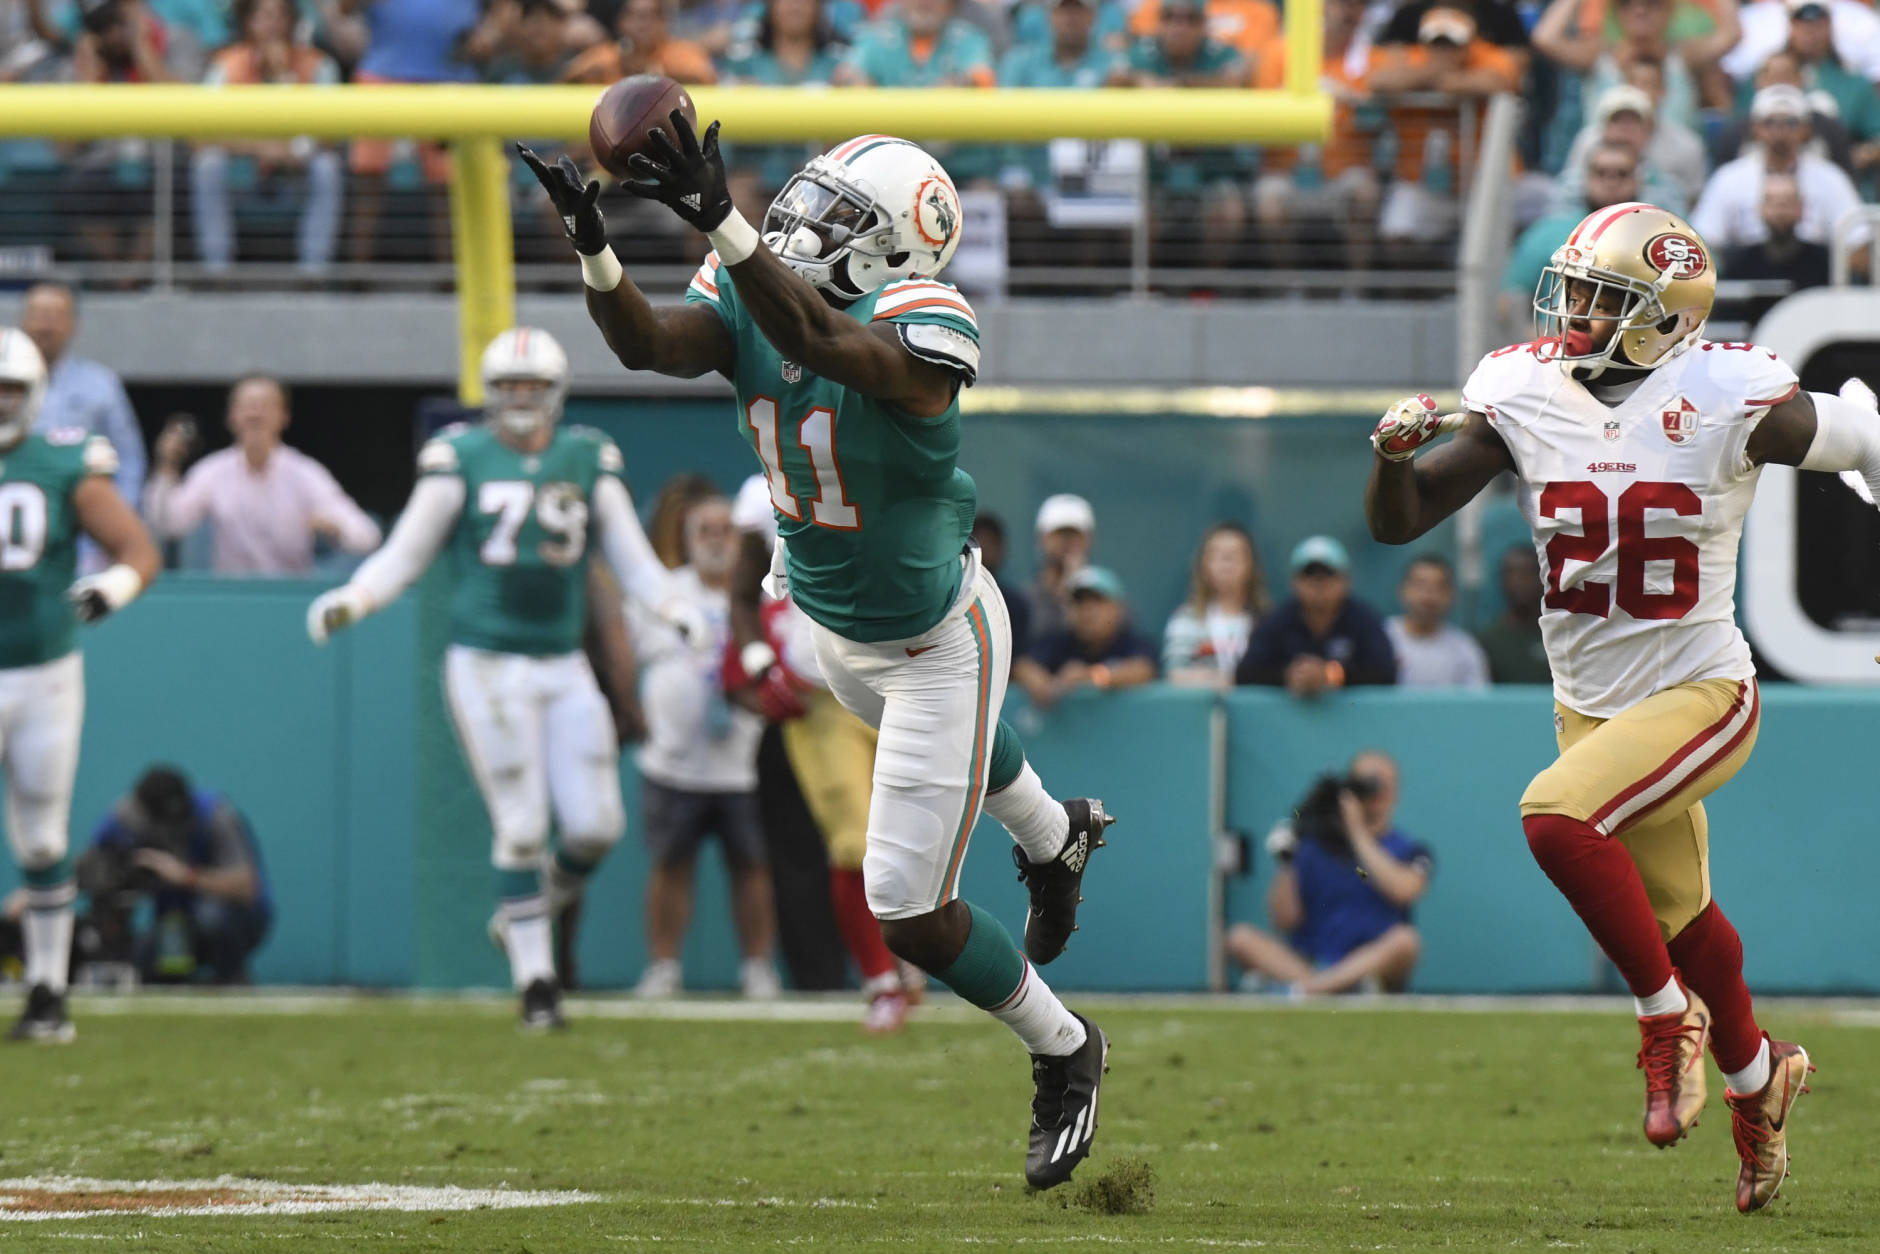 MIAMI GARDENS, FL - NOVEMBER 27: DeVante Parker #11 of the Miami Dolphins makes a 46 yard catch in the 1st quarter against the San Francisco 49ers  at Hard Rock Stadium on November 27, 2016 in Miami Gardens, Florida. (Photo by Eric Espada/Getty Images)